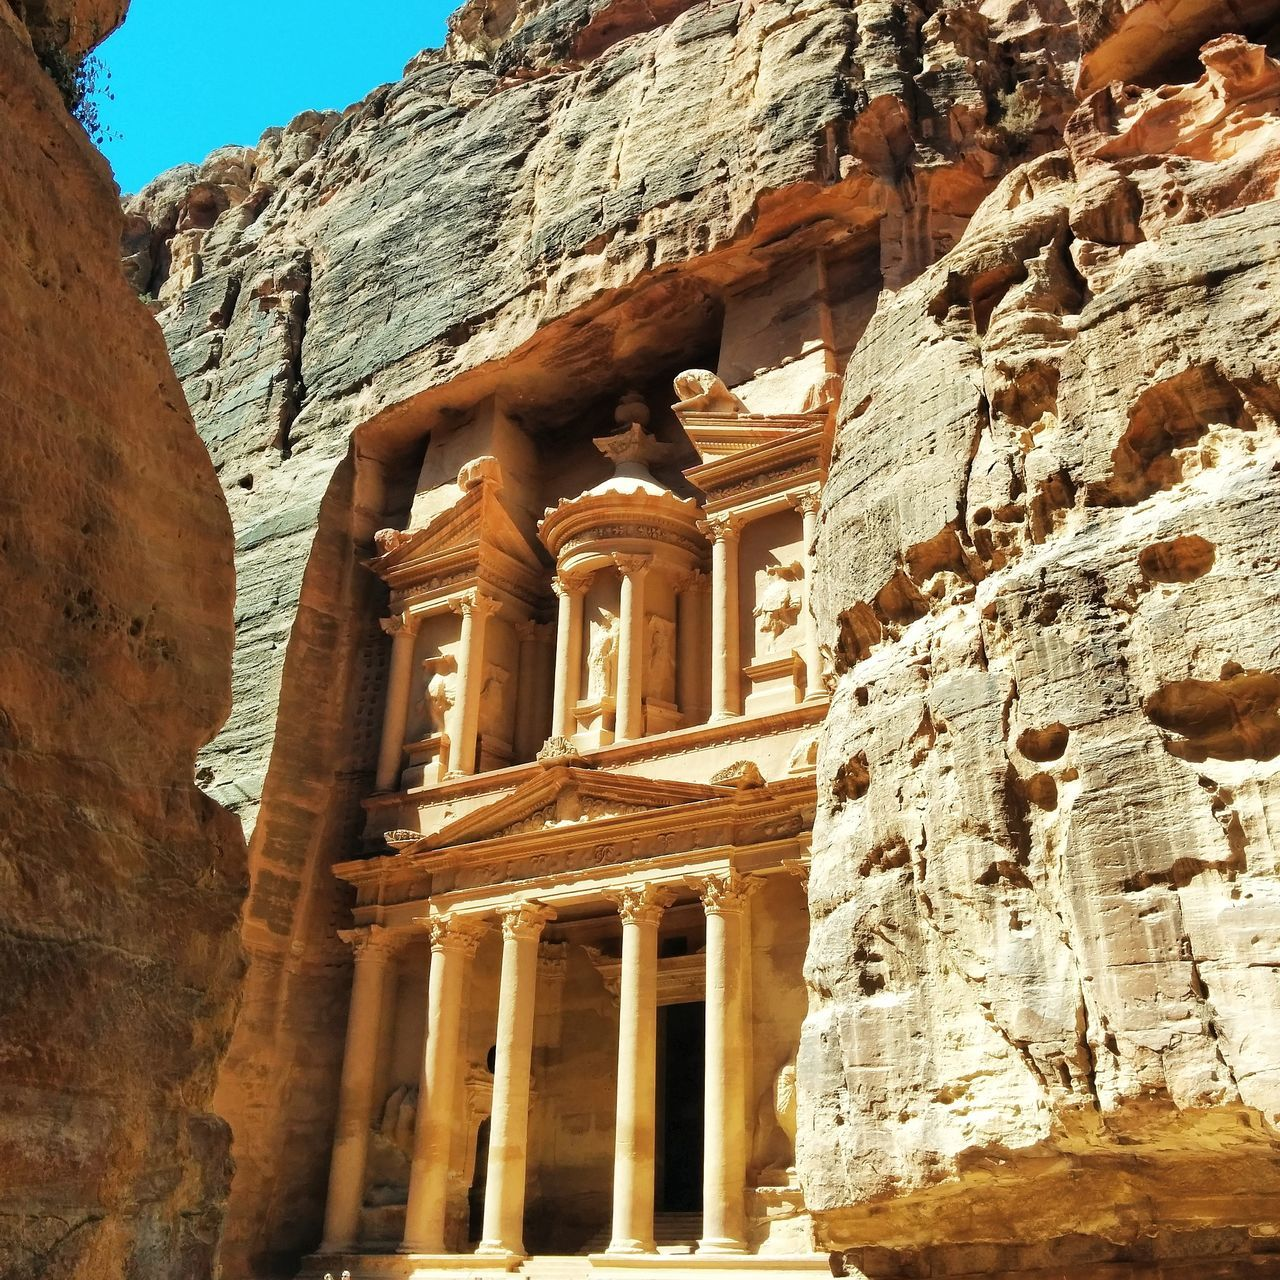 The Indiana Jones thing. Done. Monument Indiana Jones Petra Jordan